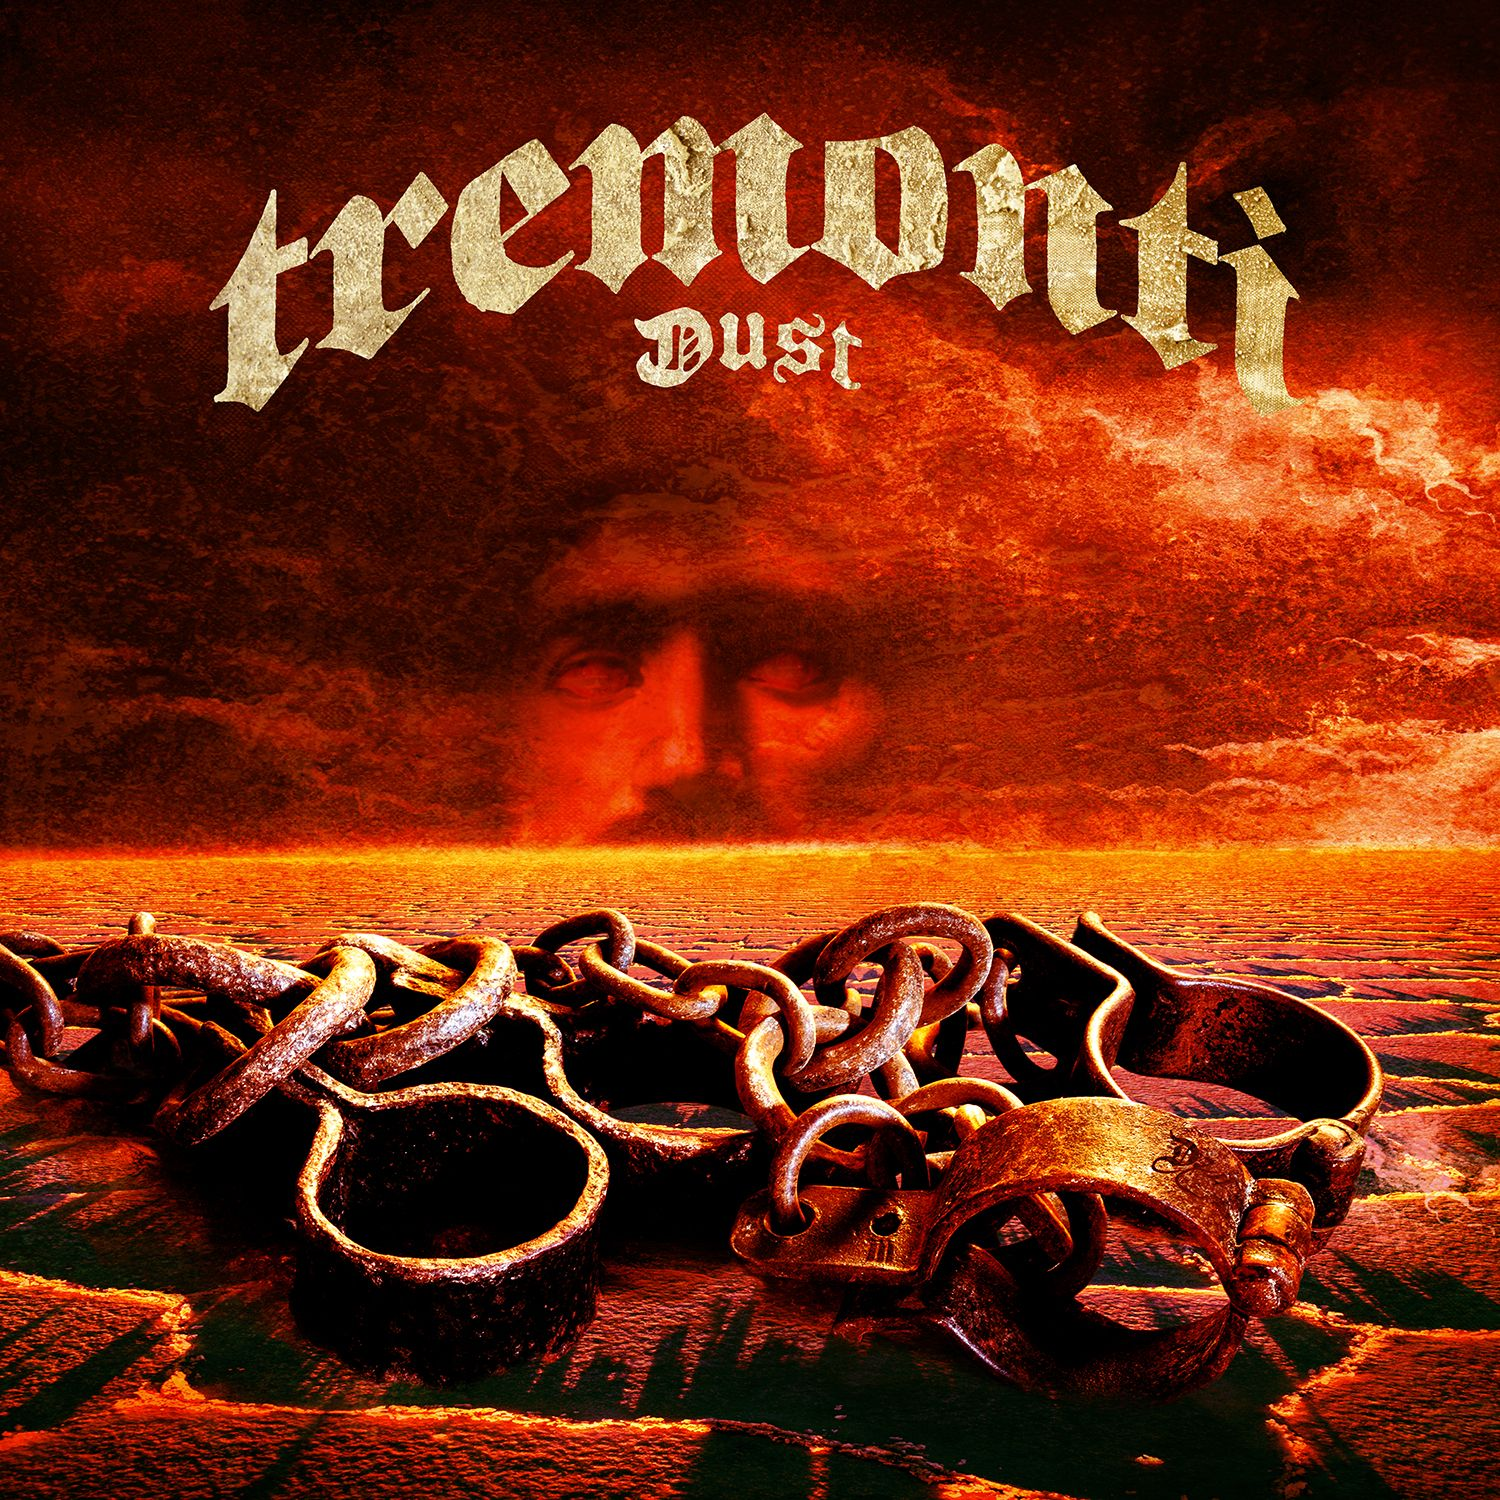 Tremonti - Dust album cover